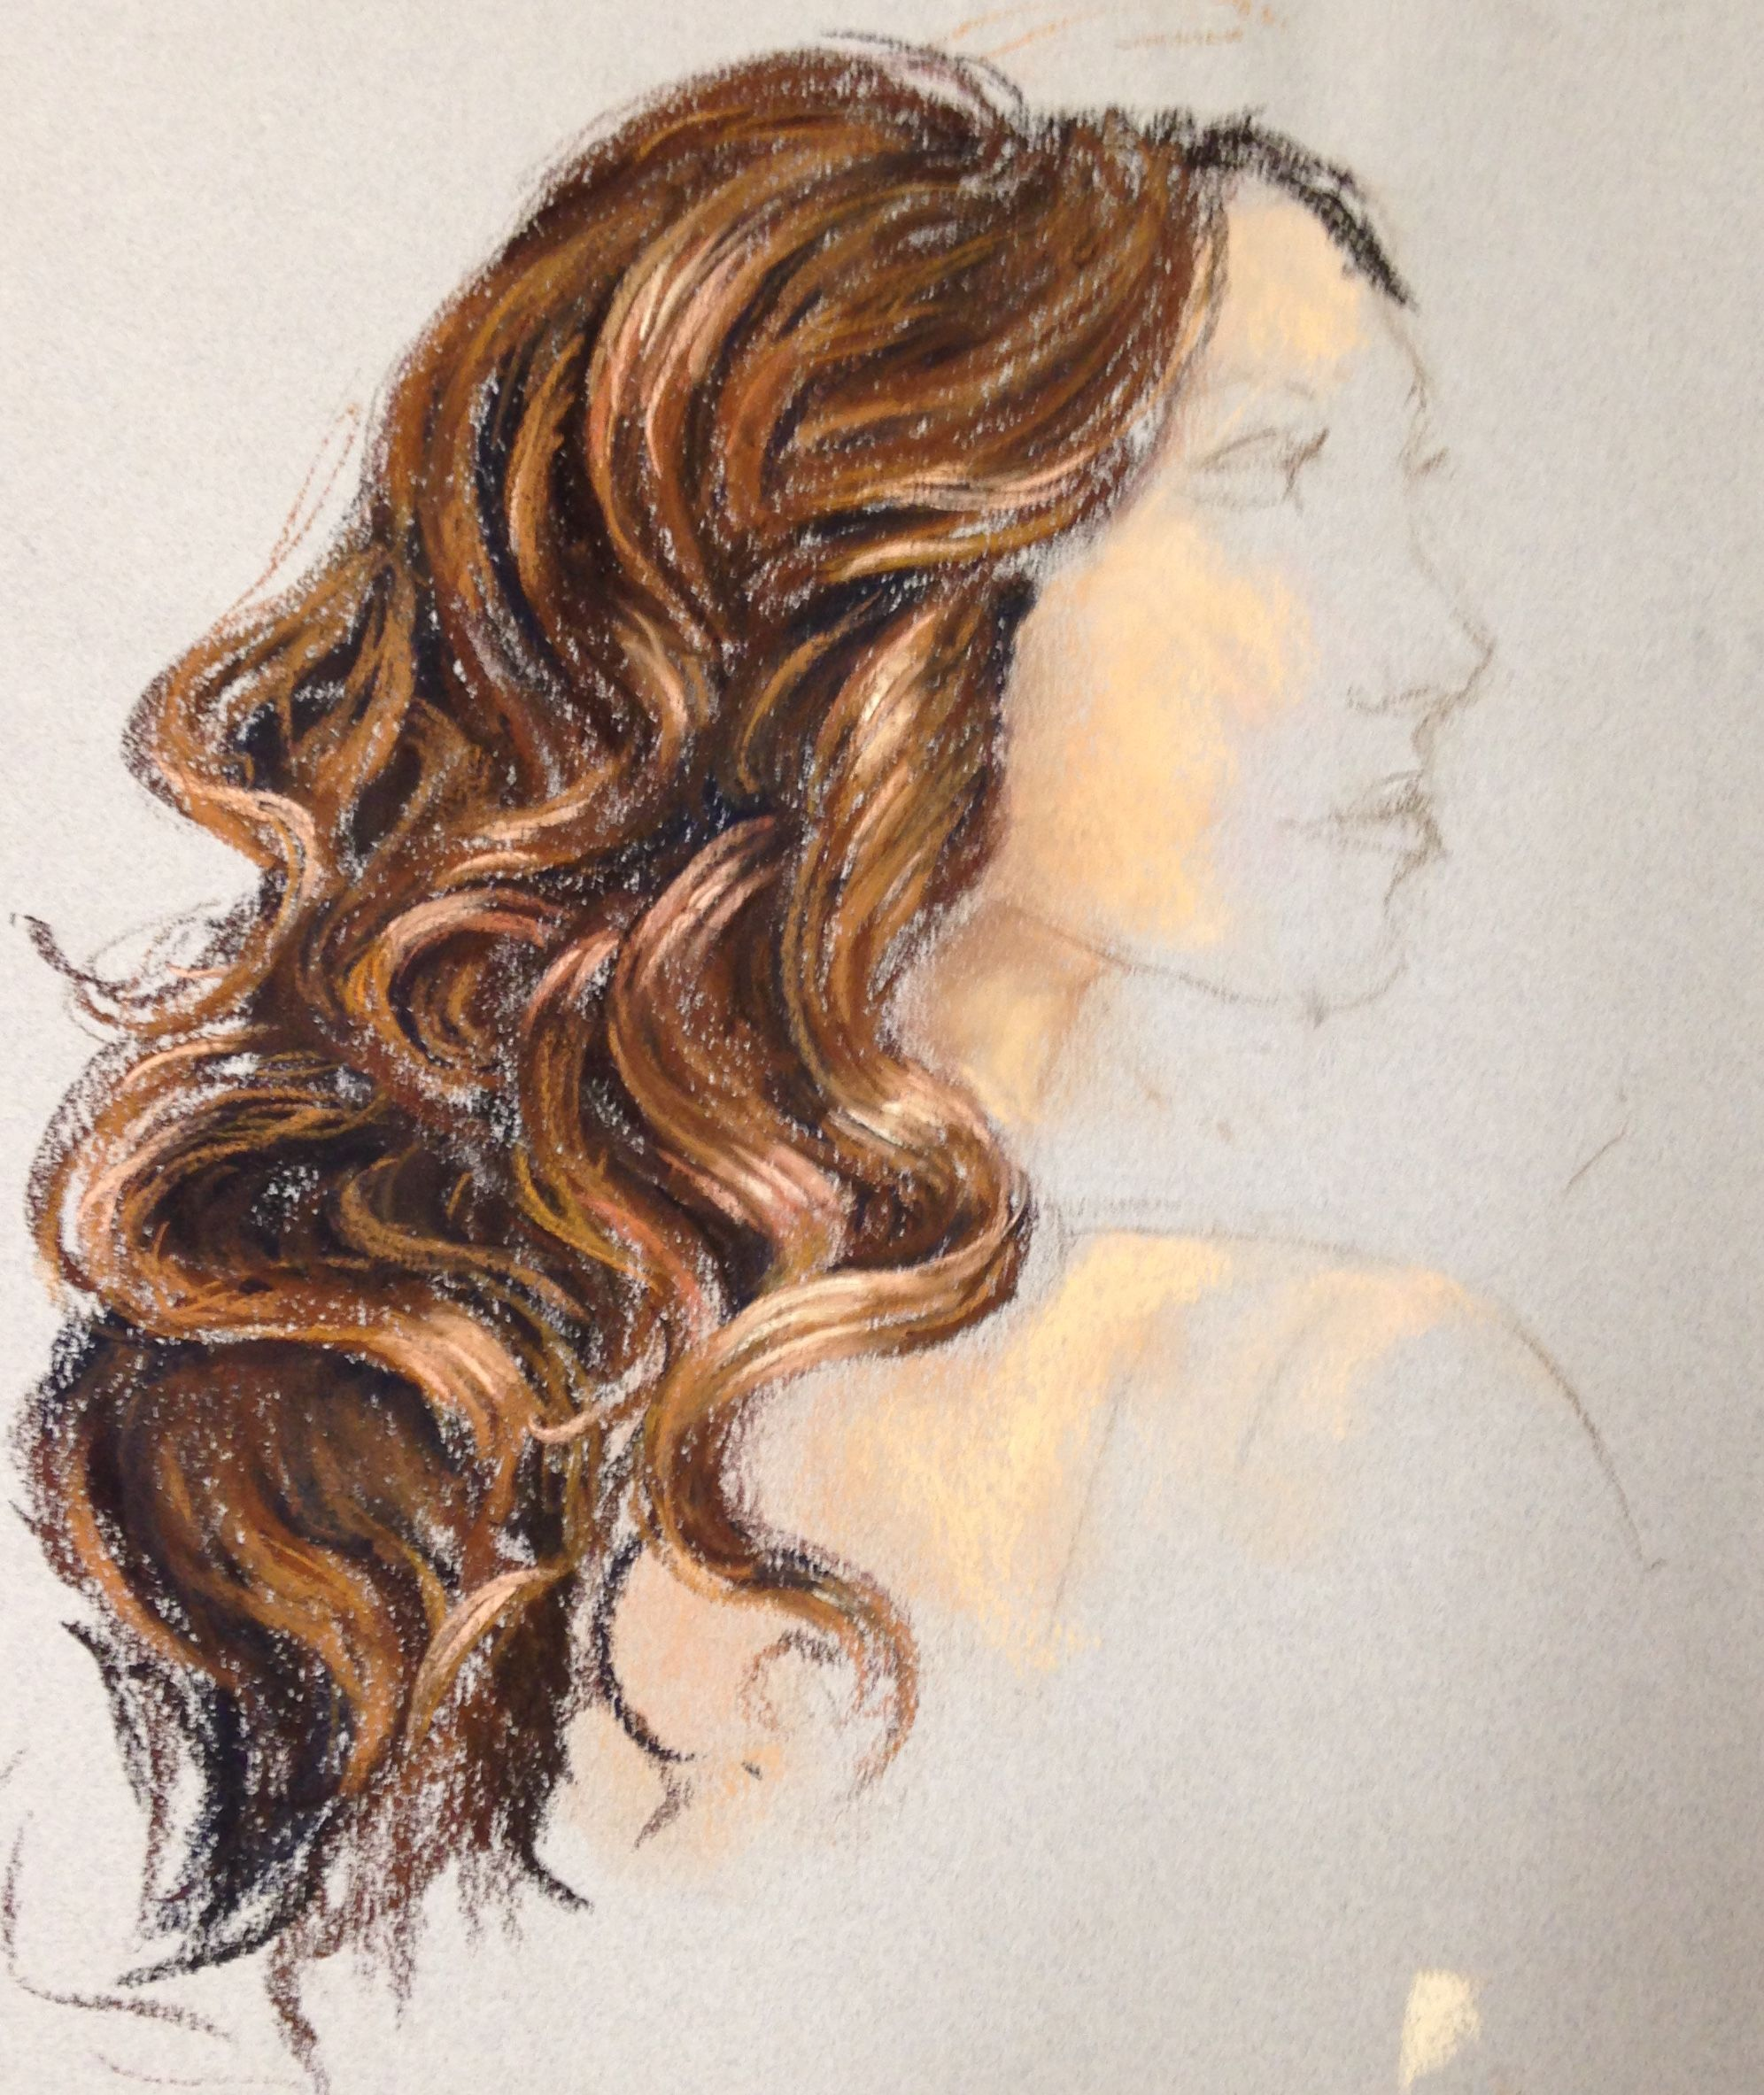 How To Draw Hair Using Watercolor Haare Zeichnen